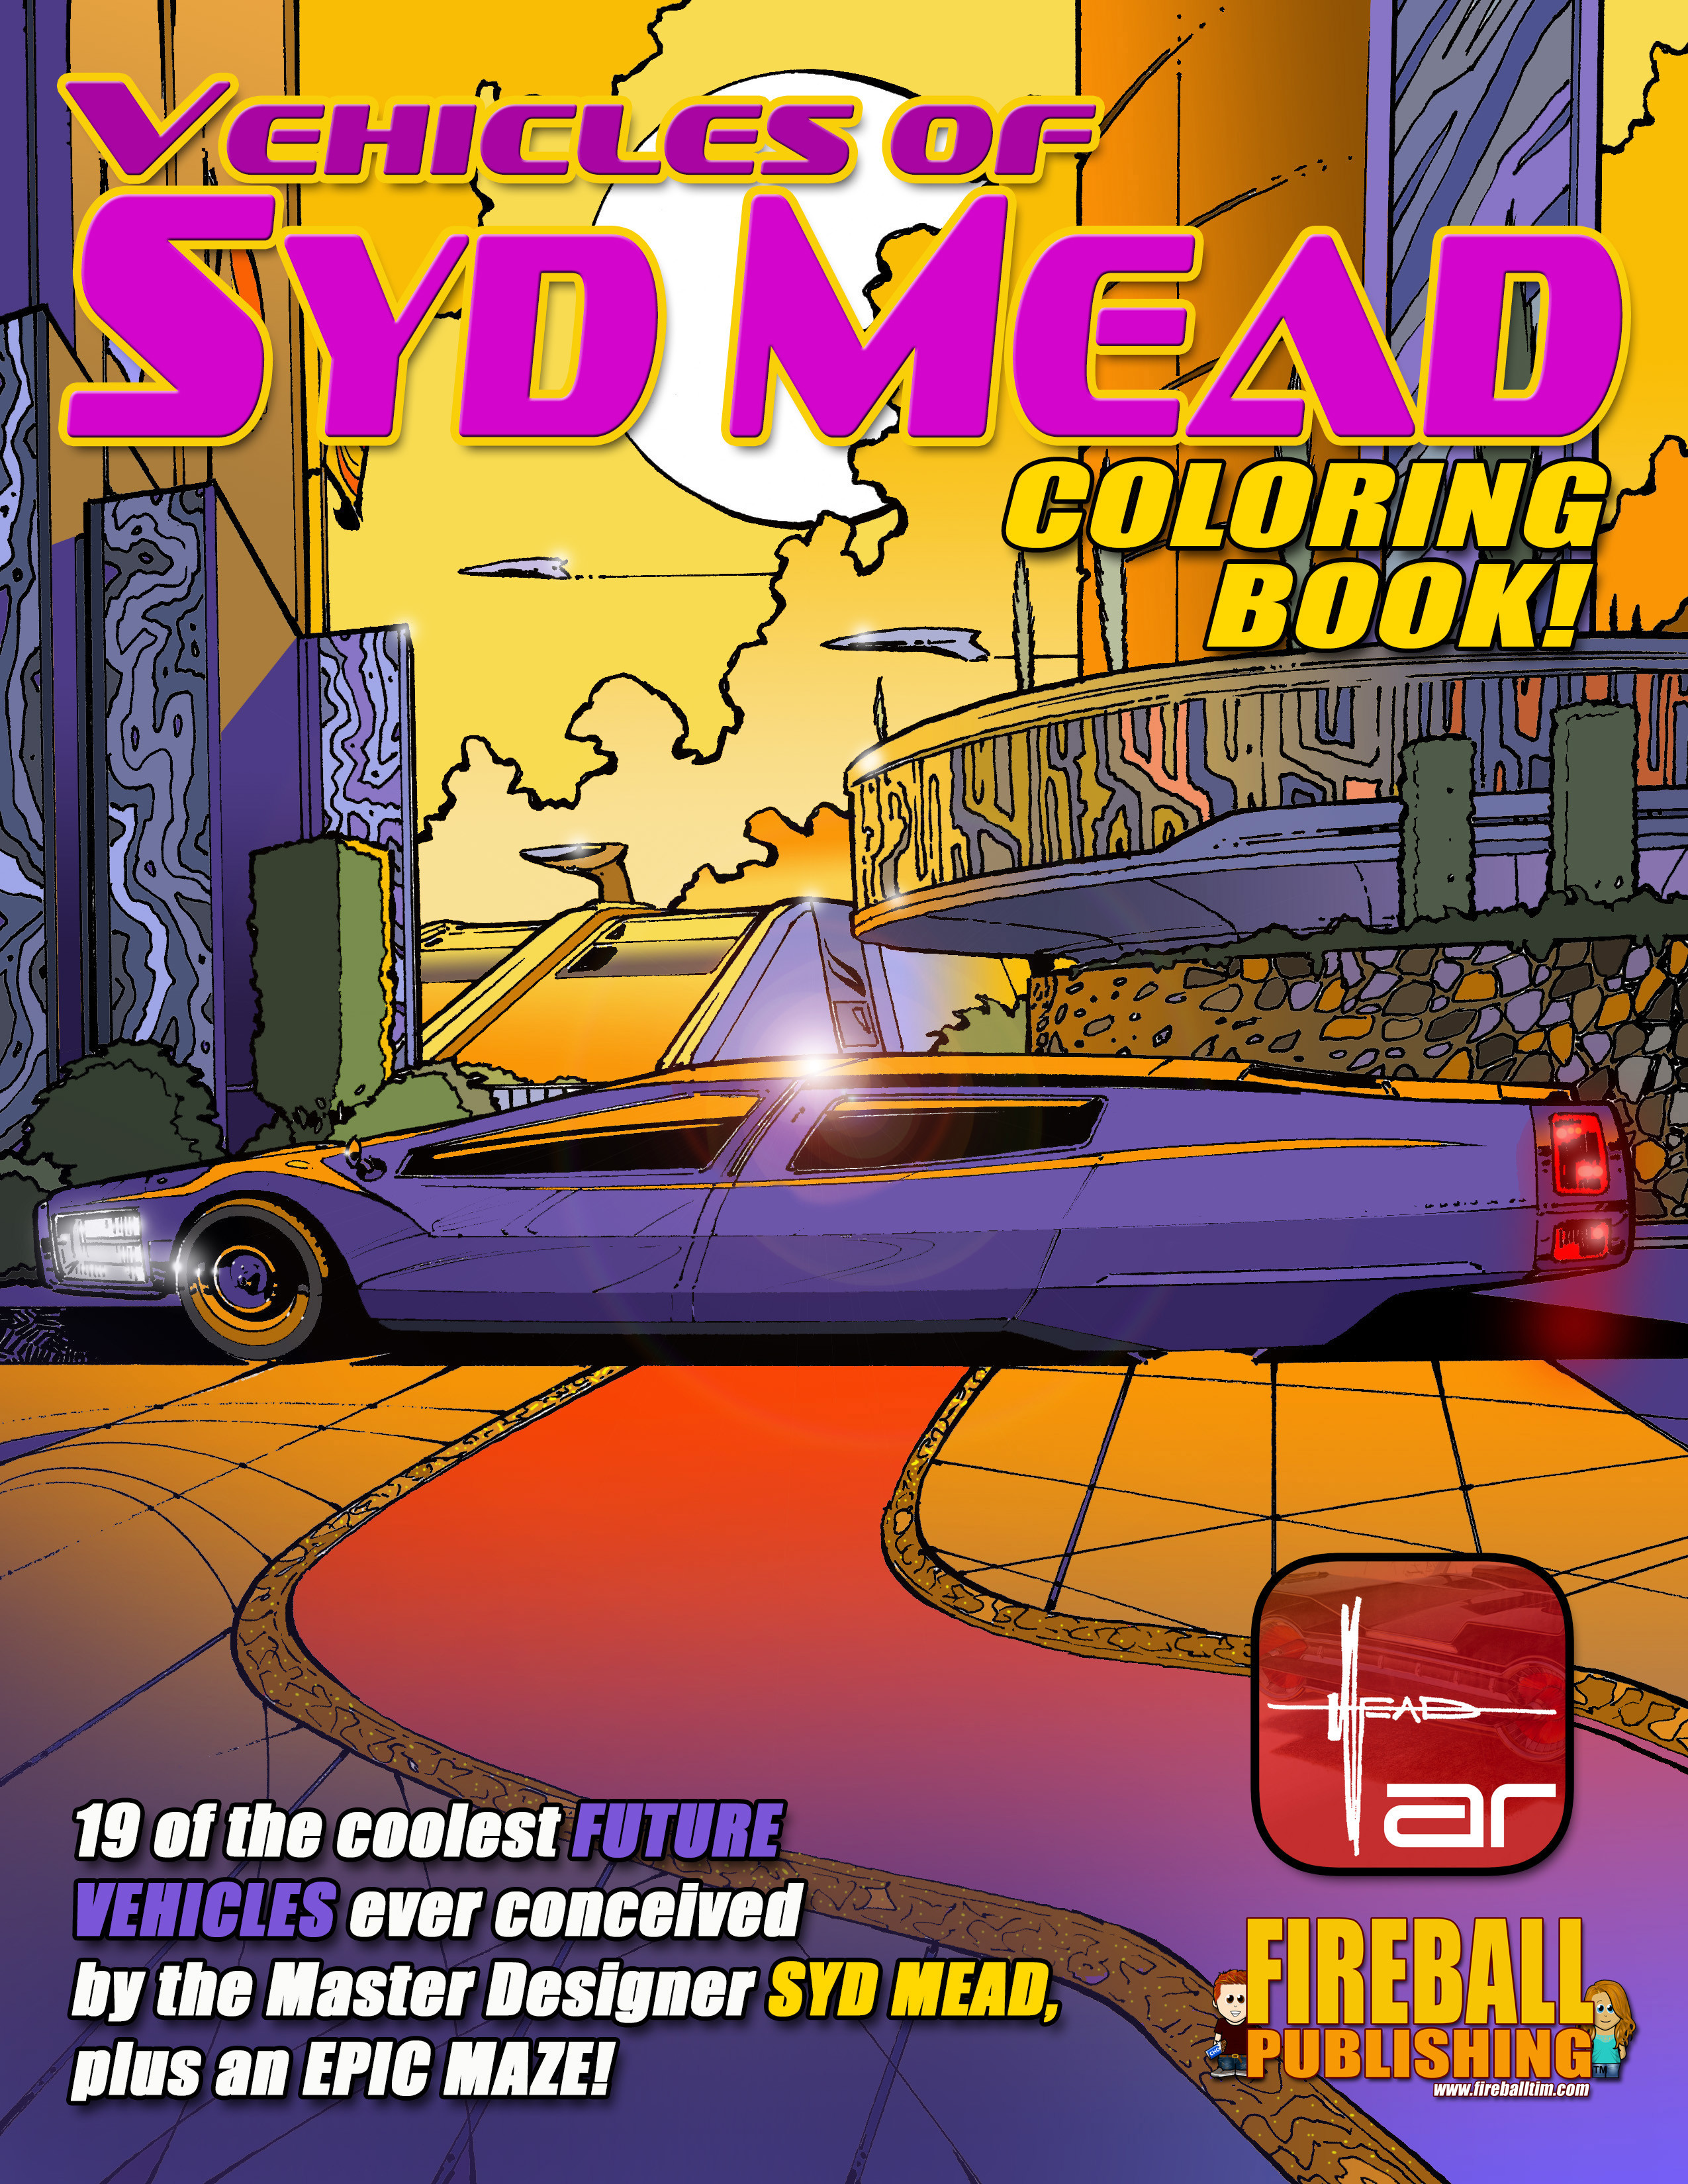 The Official VEHICLES of SYD MEAD Coloring Book is available on Amazon Dec 1st! #sydmead